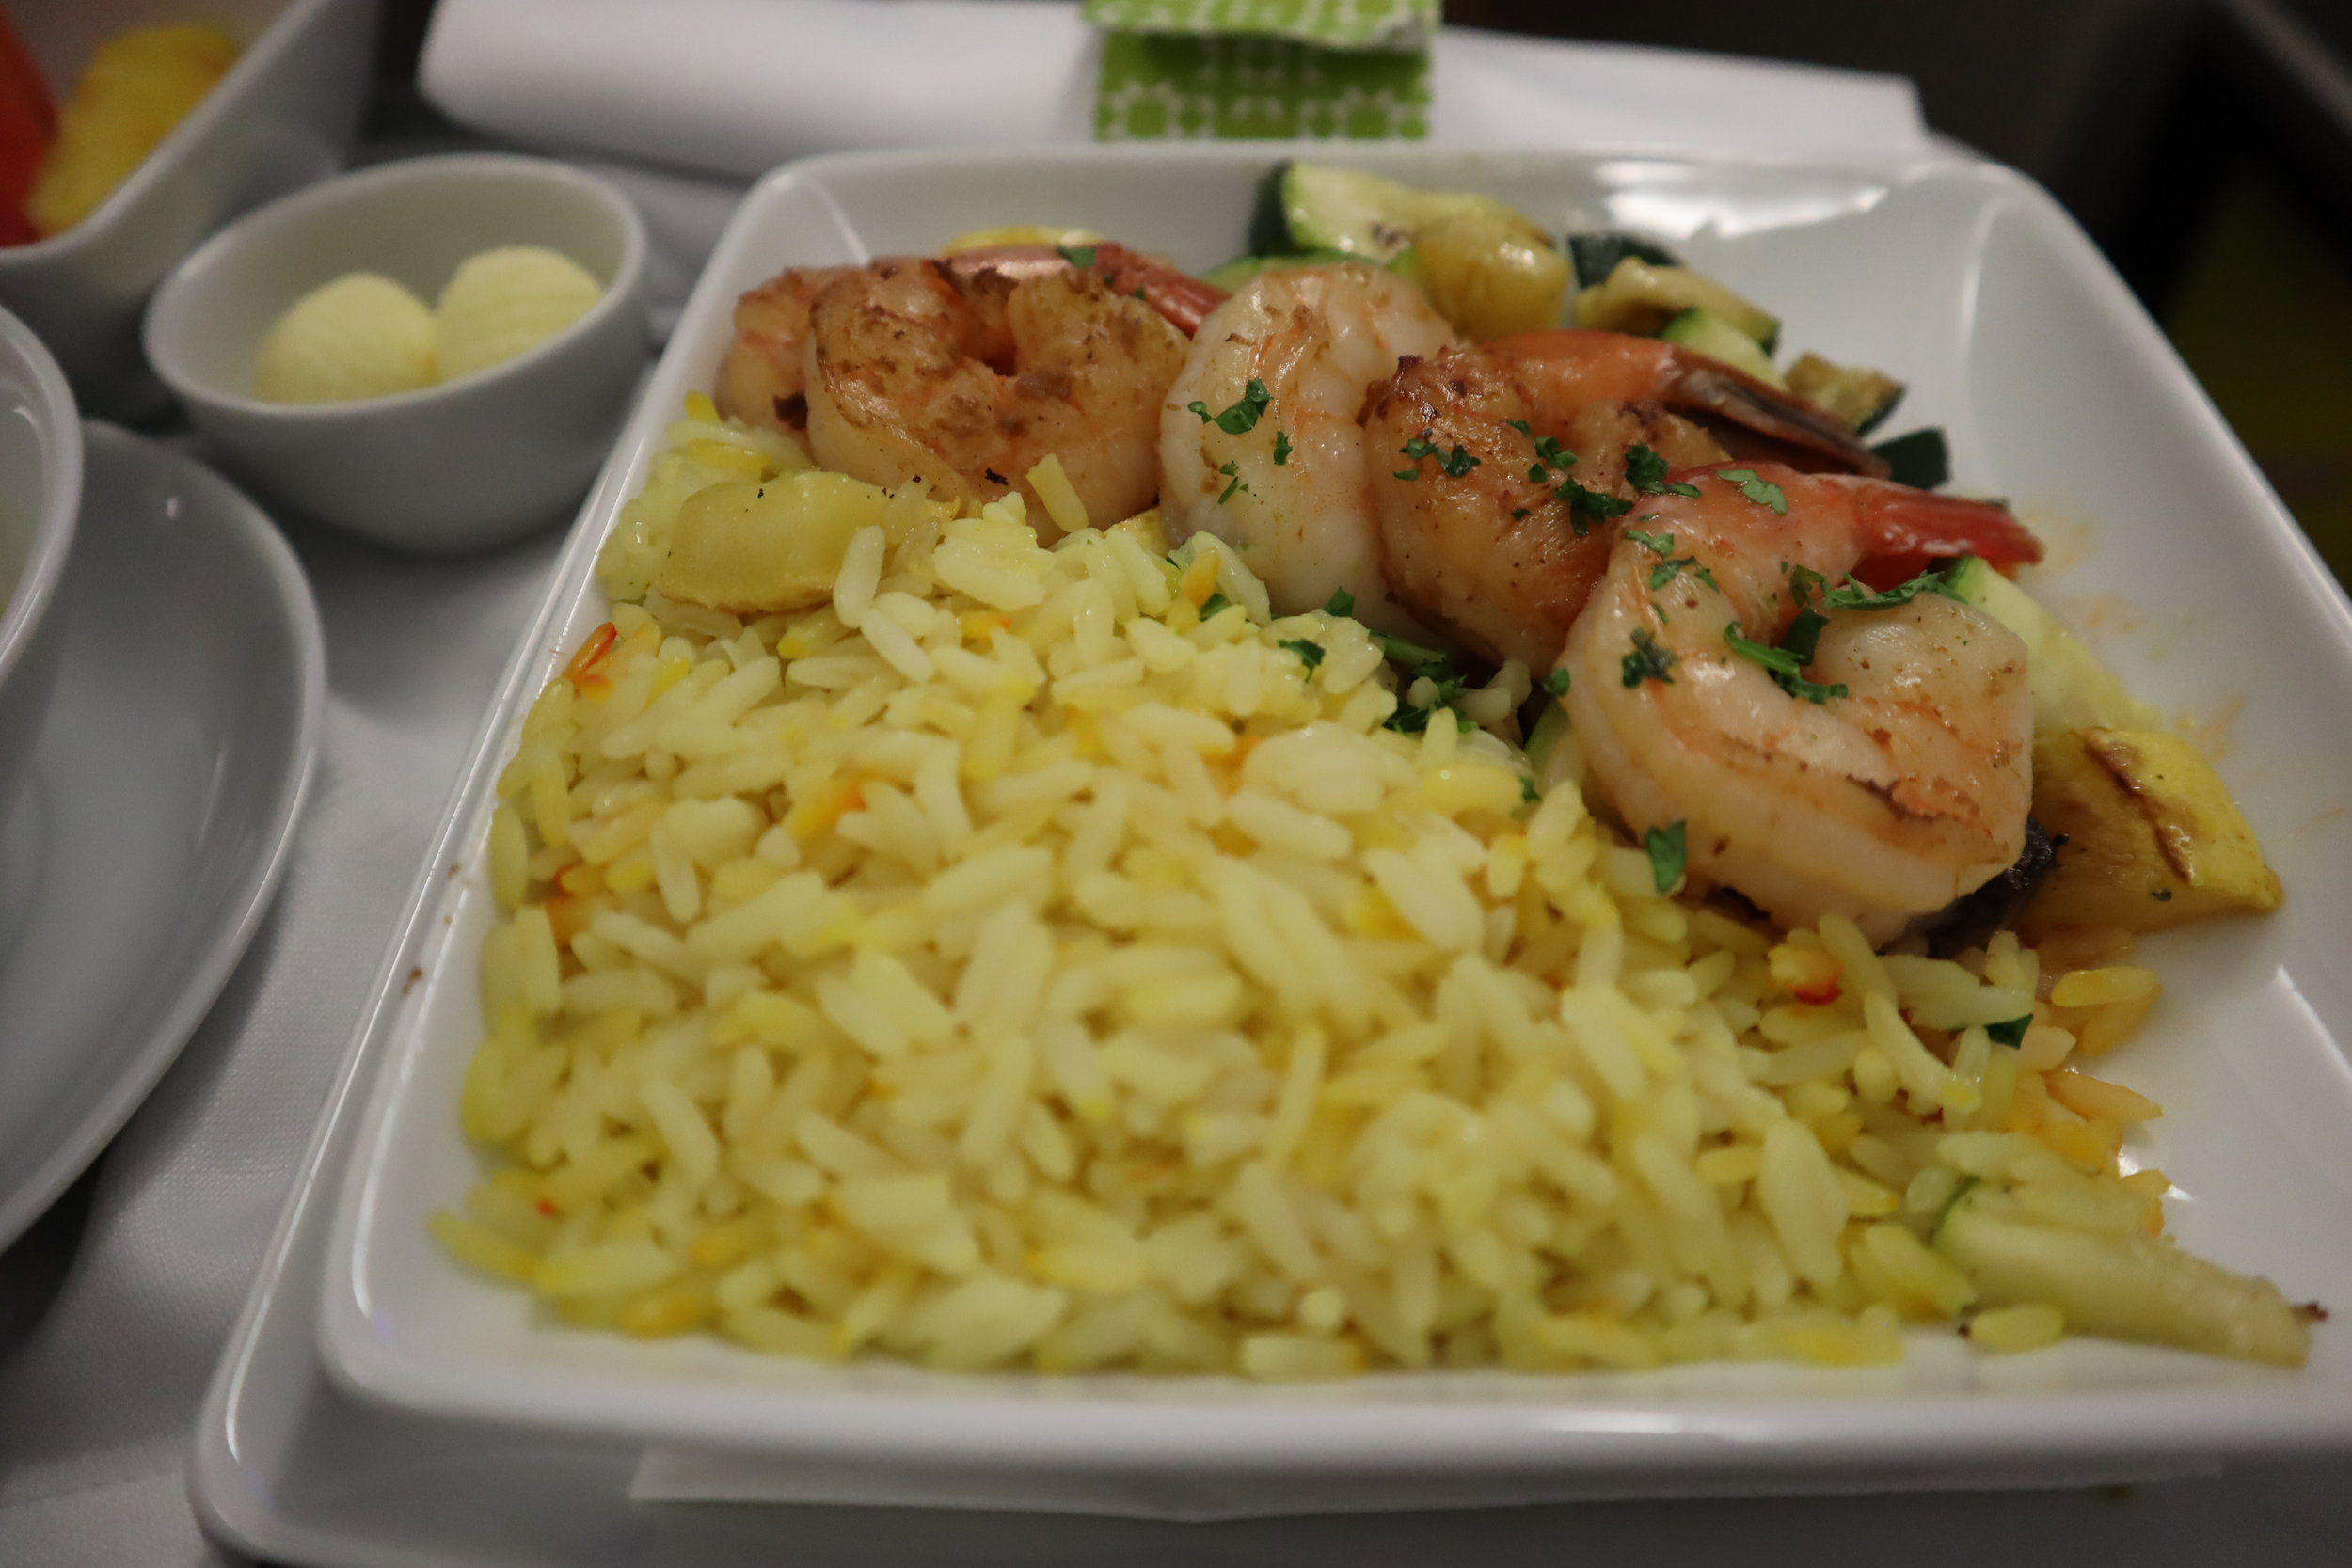 TAP Air Portugal business class – Garlic shrimp with saffron rice